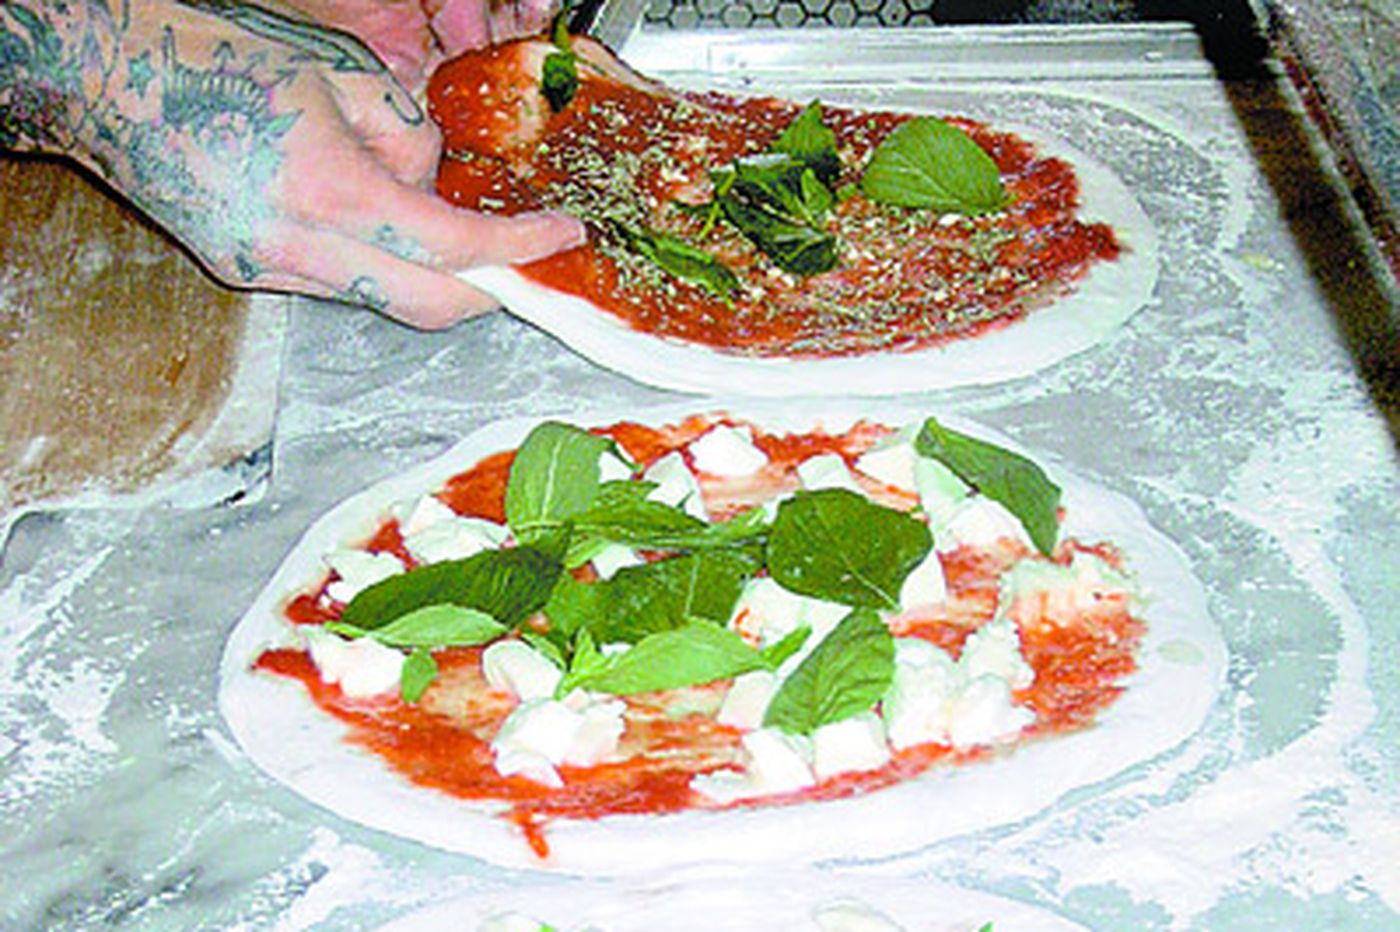 Stephen Starr goes in search of the perfect pizza